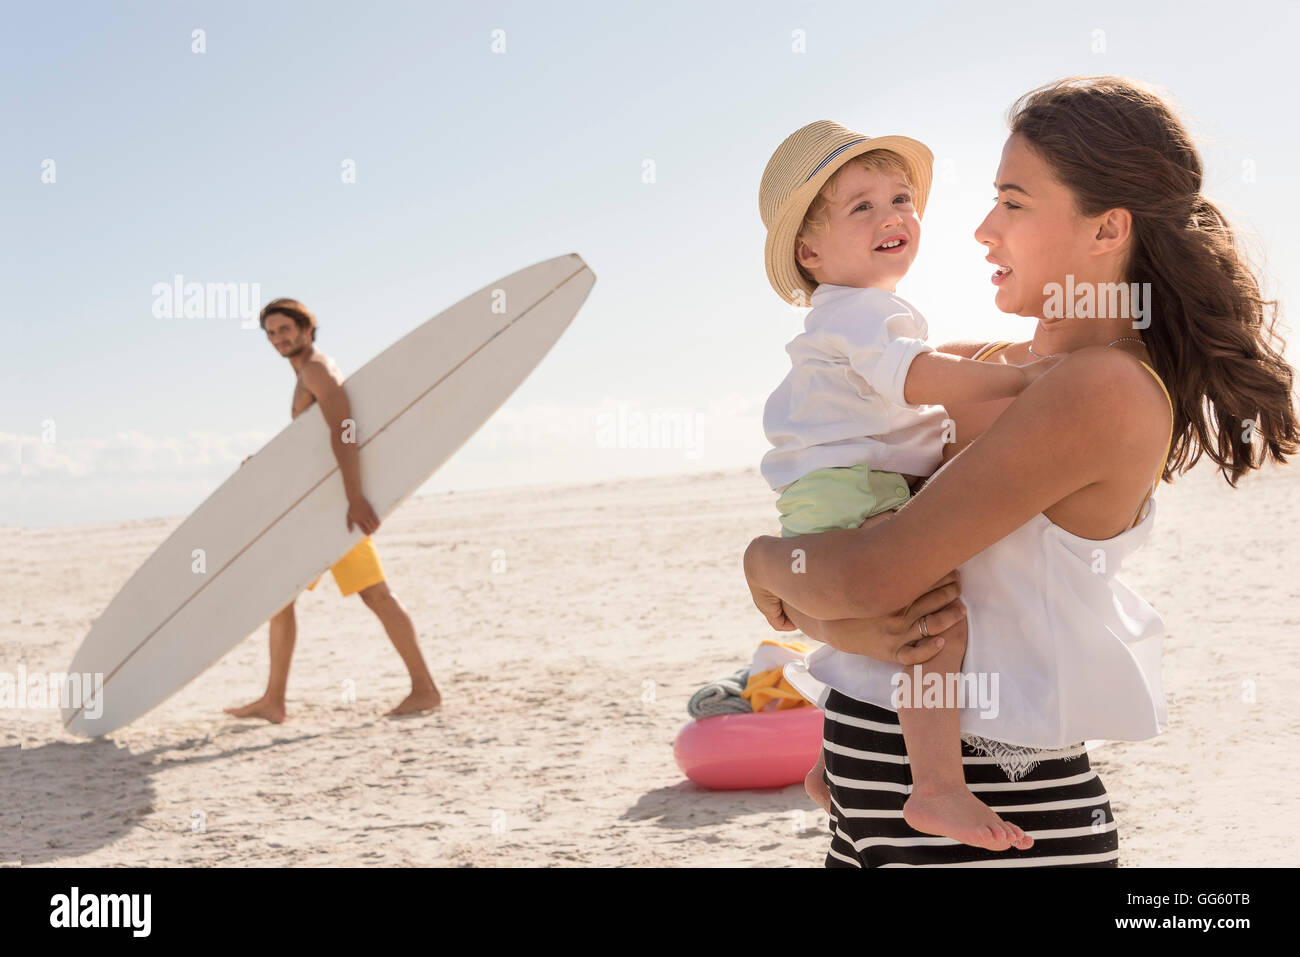 Happy family on beach Photo Stock